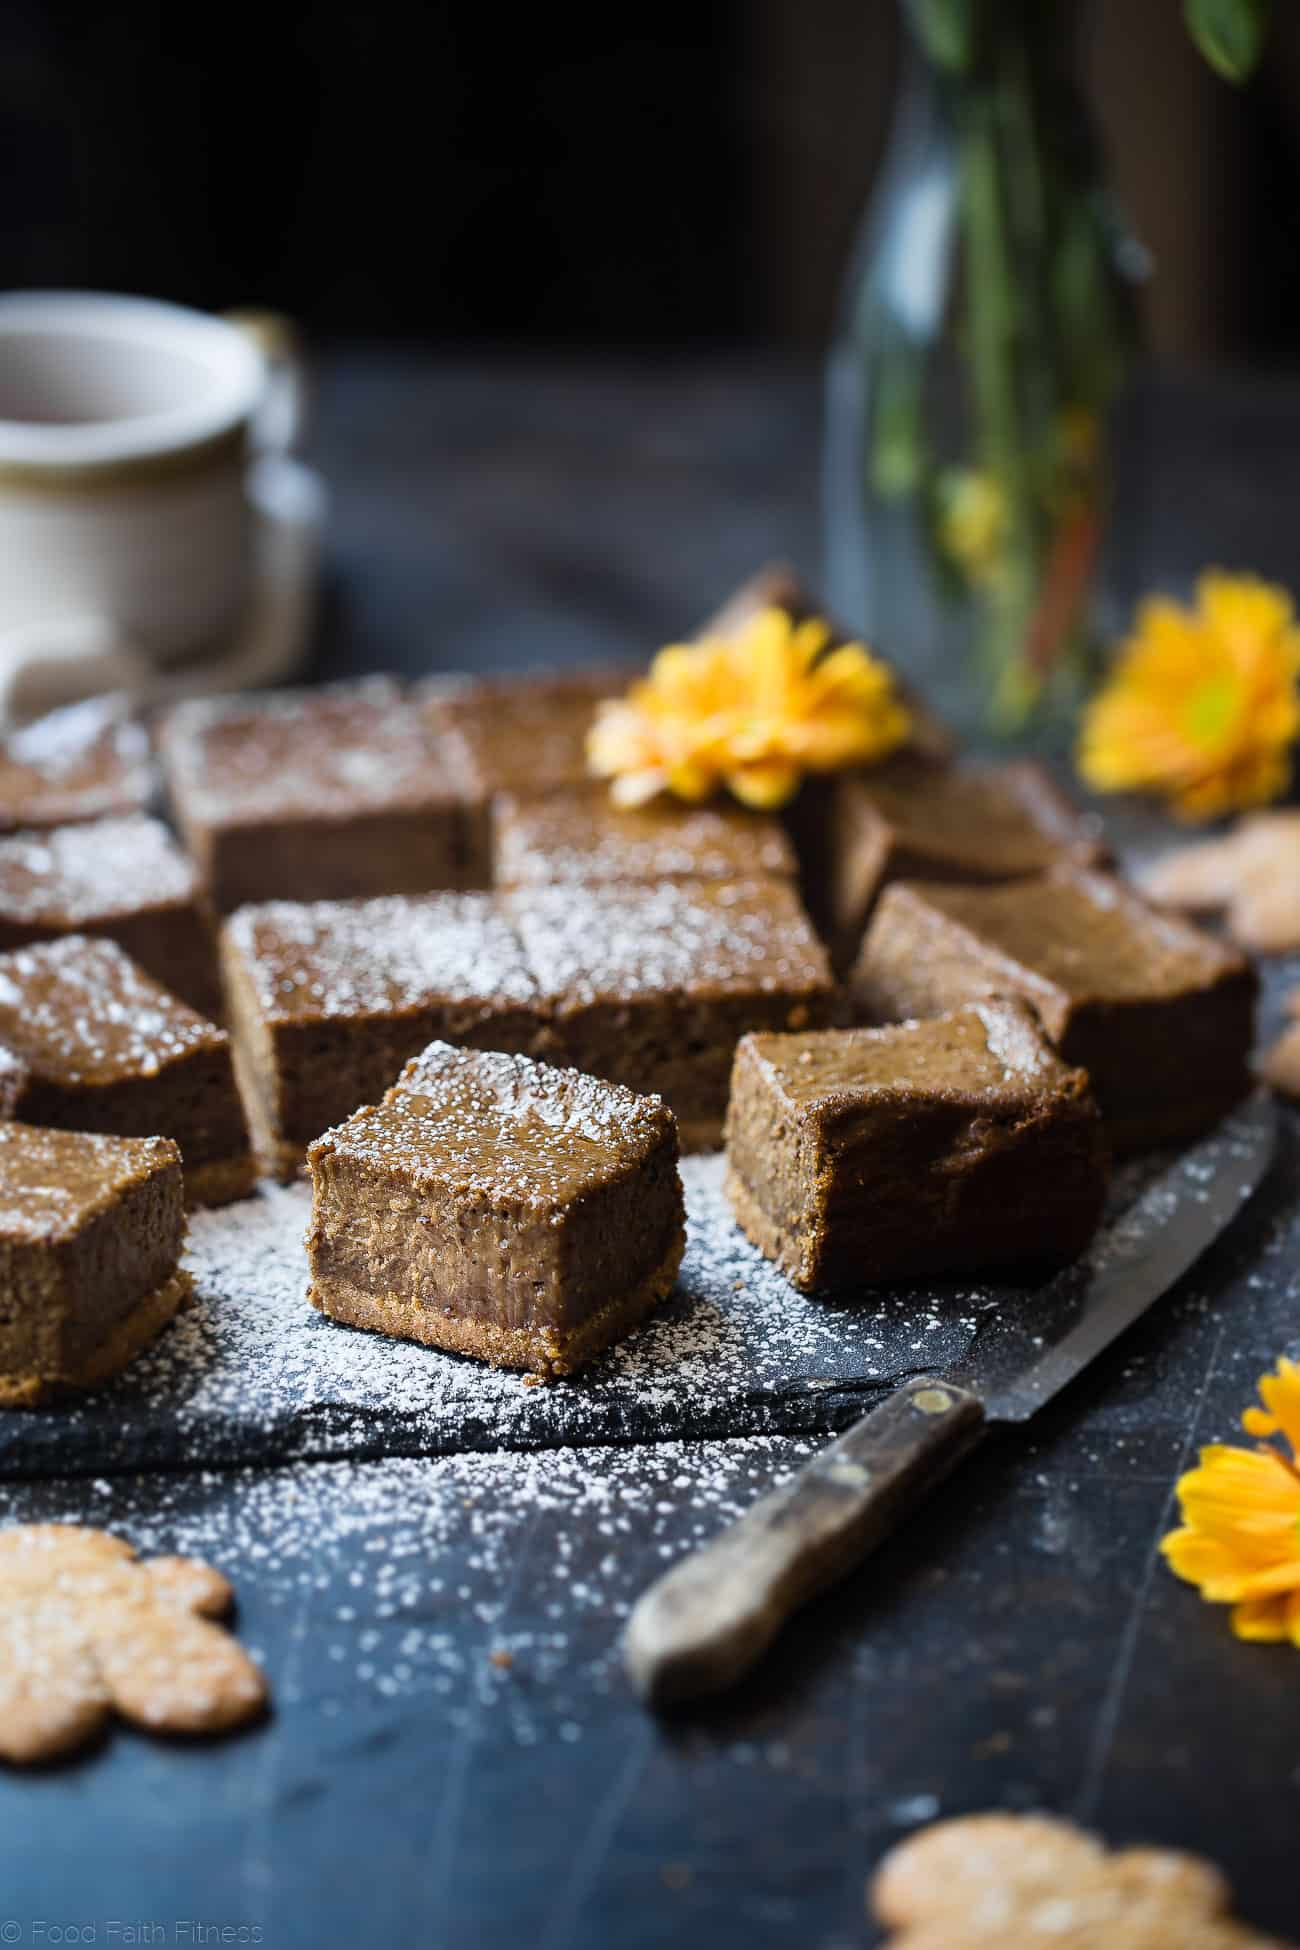 Dairy Free Vegan Coffee Gingerbread Cheesecake Bars - These little bites of gingerbread bliss are SO creamy and spicy-sweet! A paleo friendly, healthy and gluten free dessert for the holidays that you will never believe is dairy and egg free!  | Foodfaithfitness.com | @FoodFaithFit